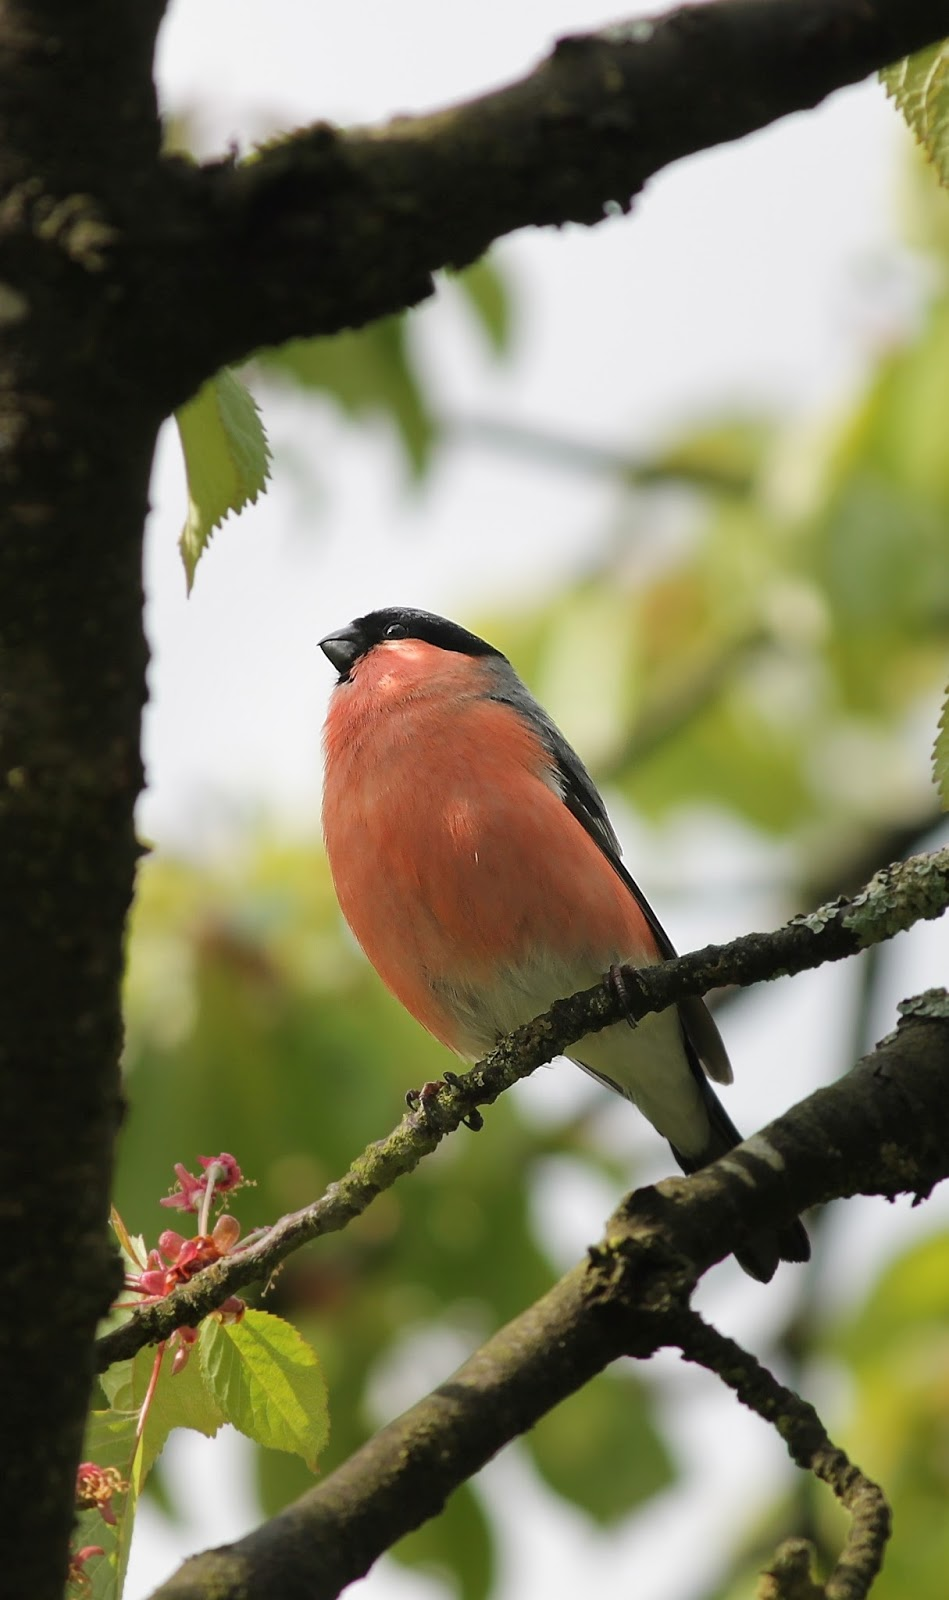 Wonderful picture of a bullfinch